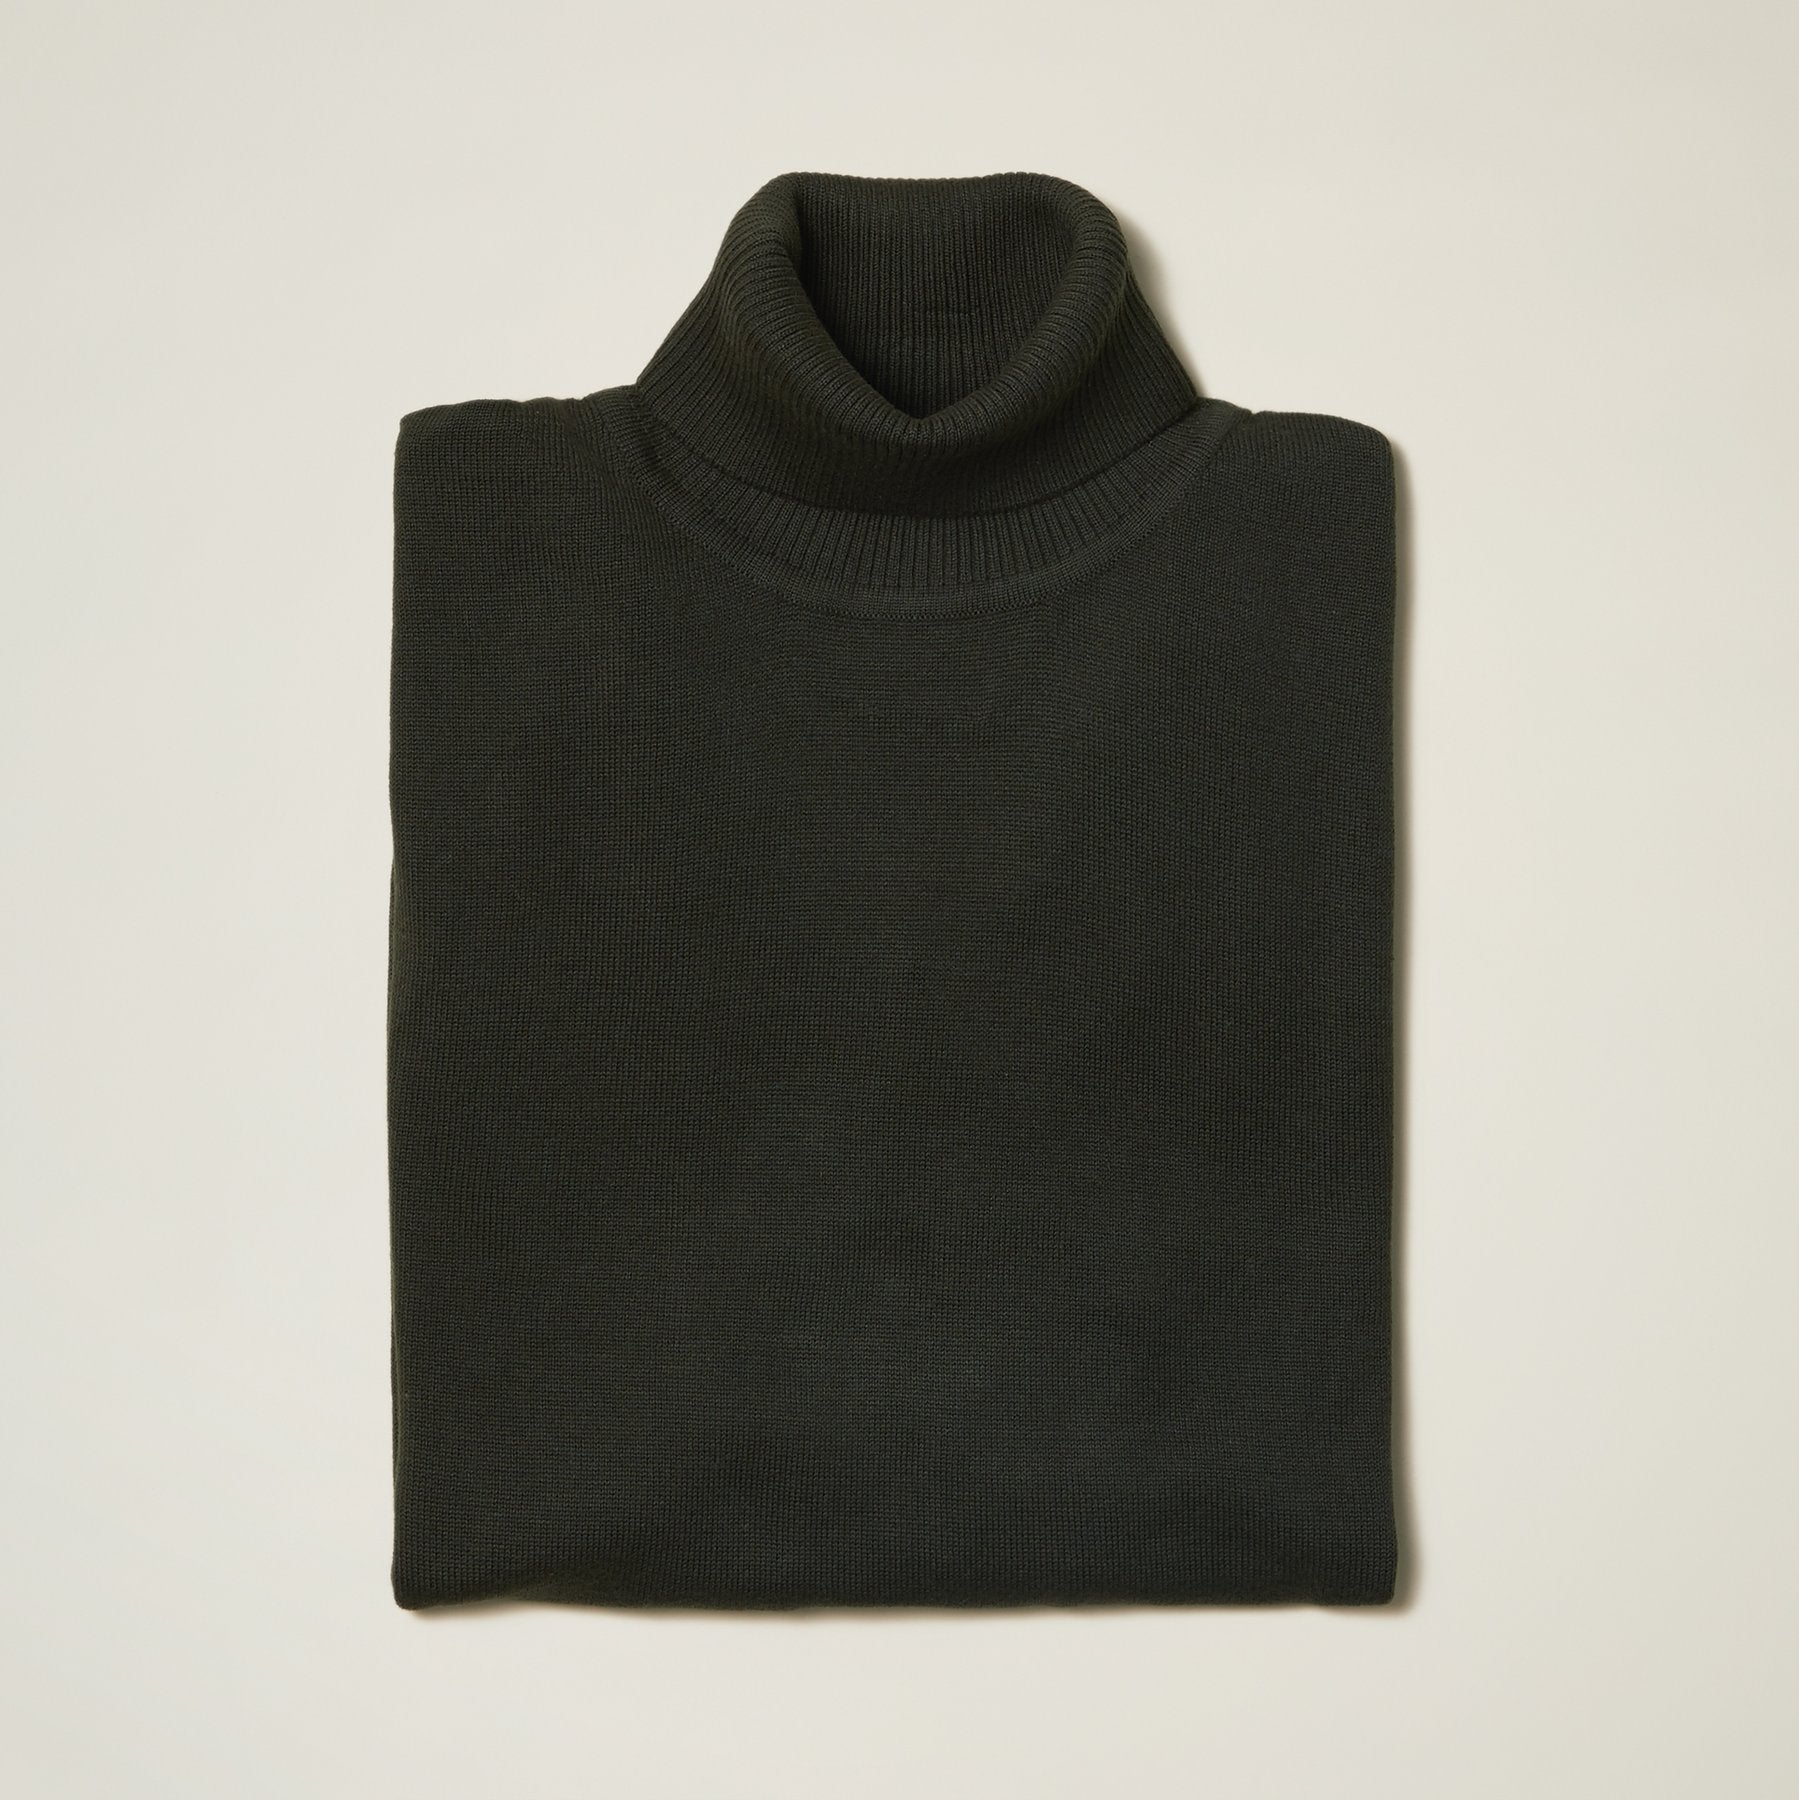 Inserch Cotton Blend Turtleneck Sweater Forest Green